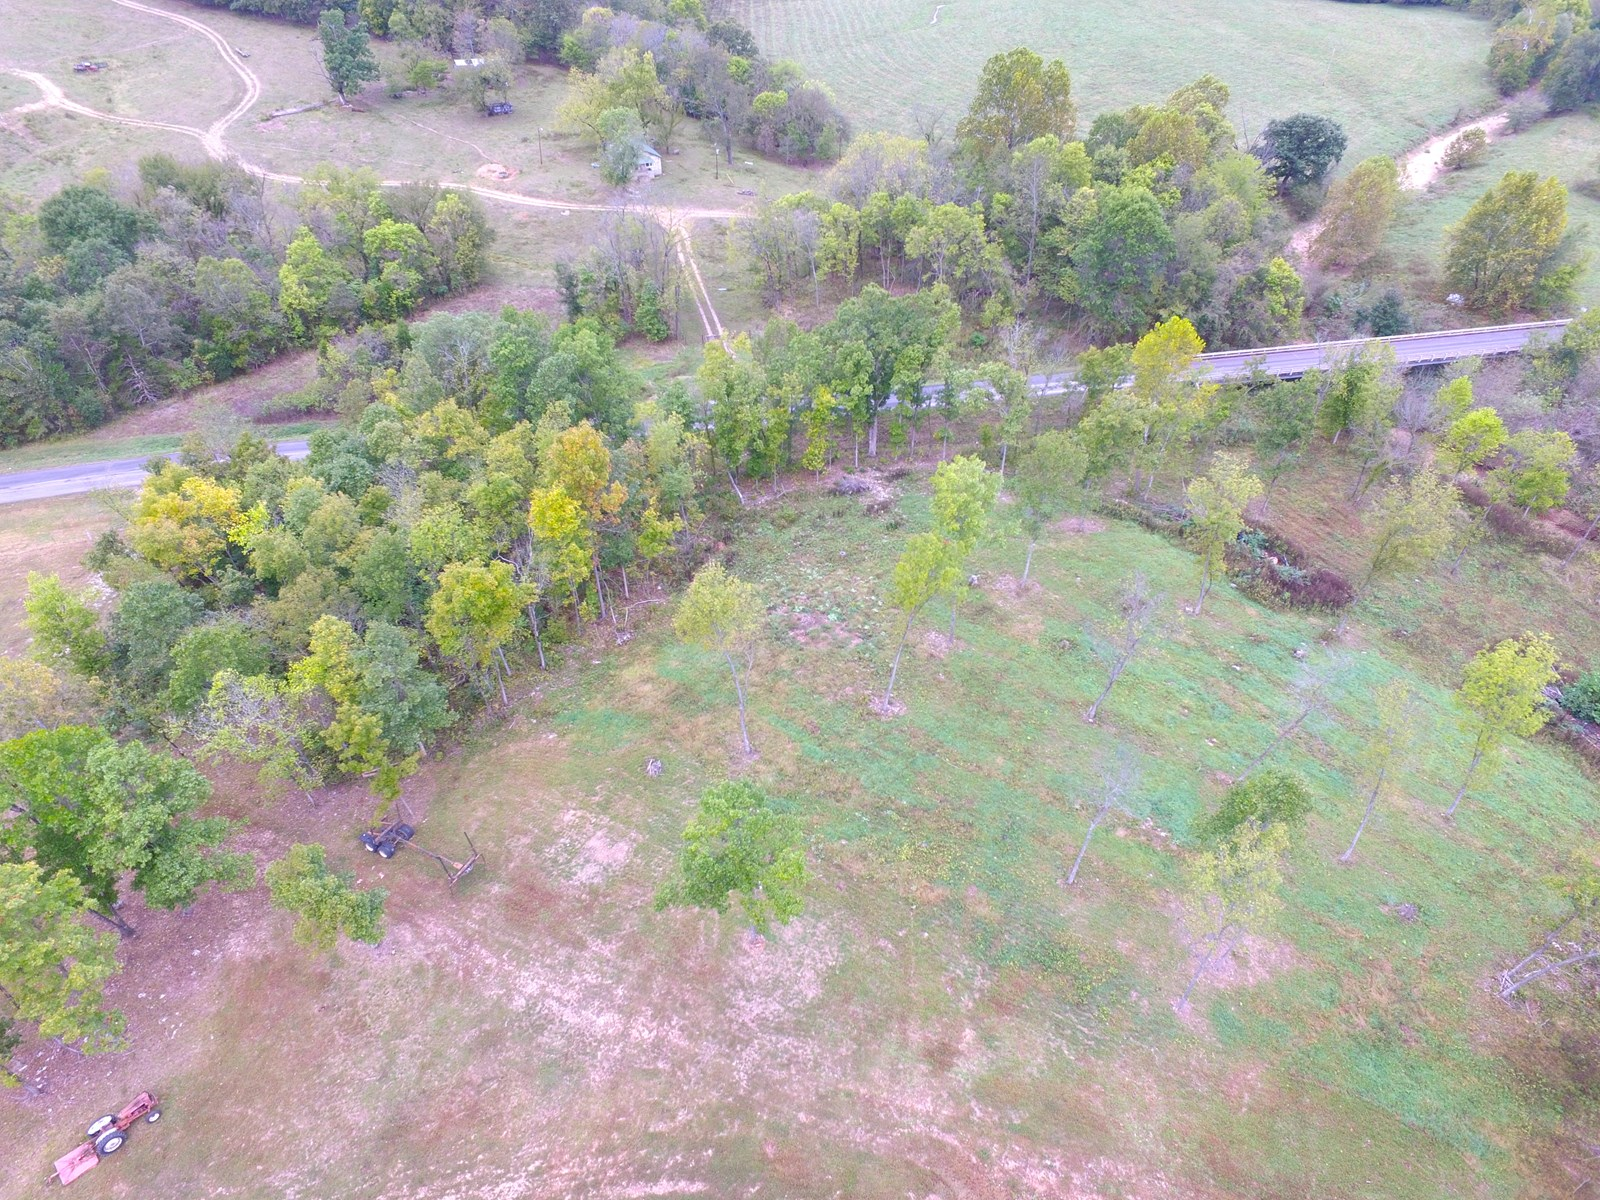 Recreational Property for Sale in Missouri